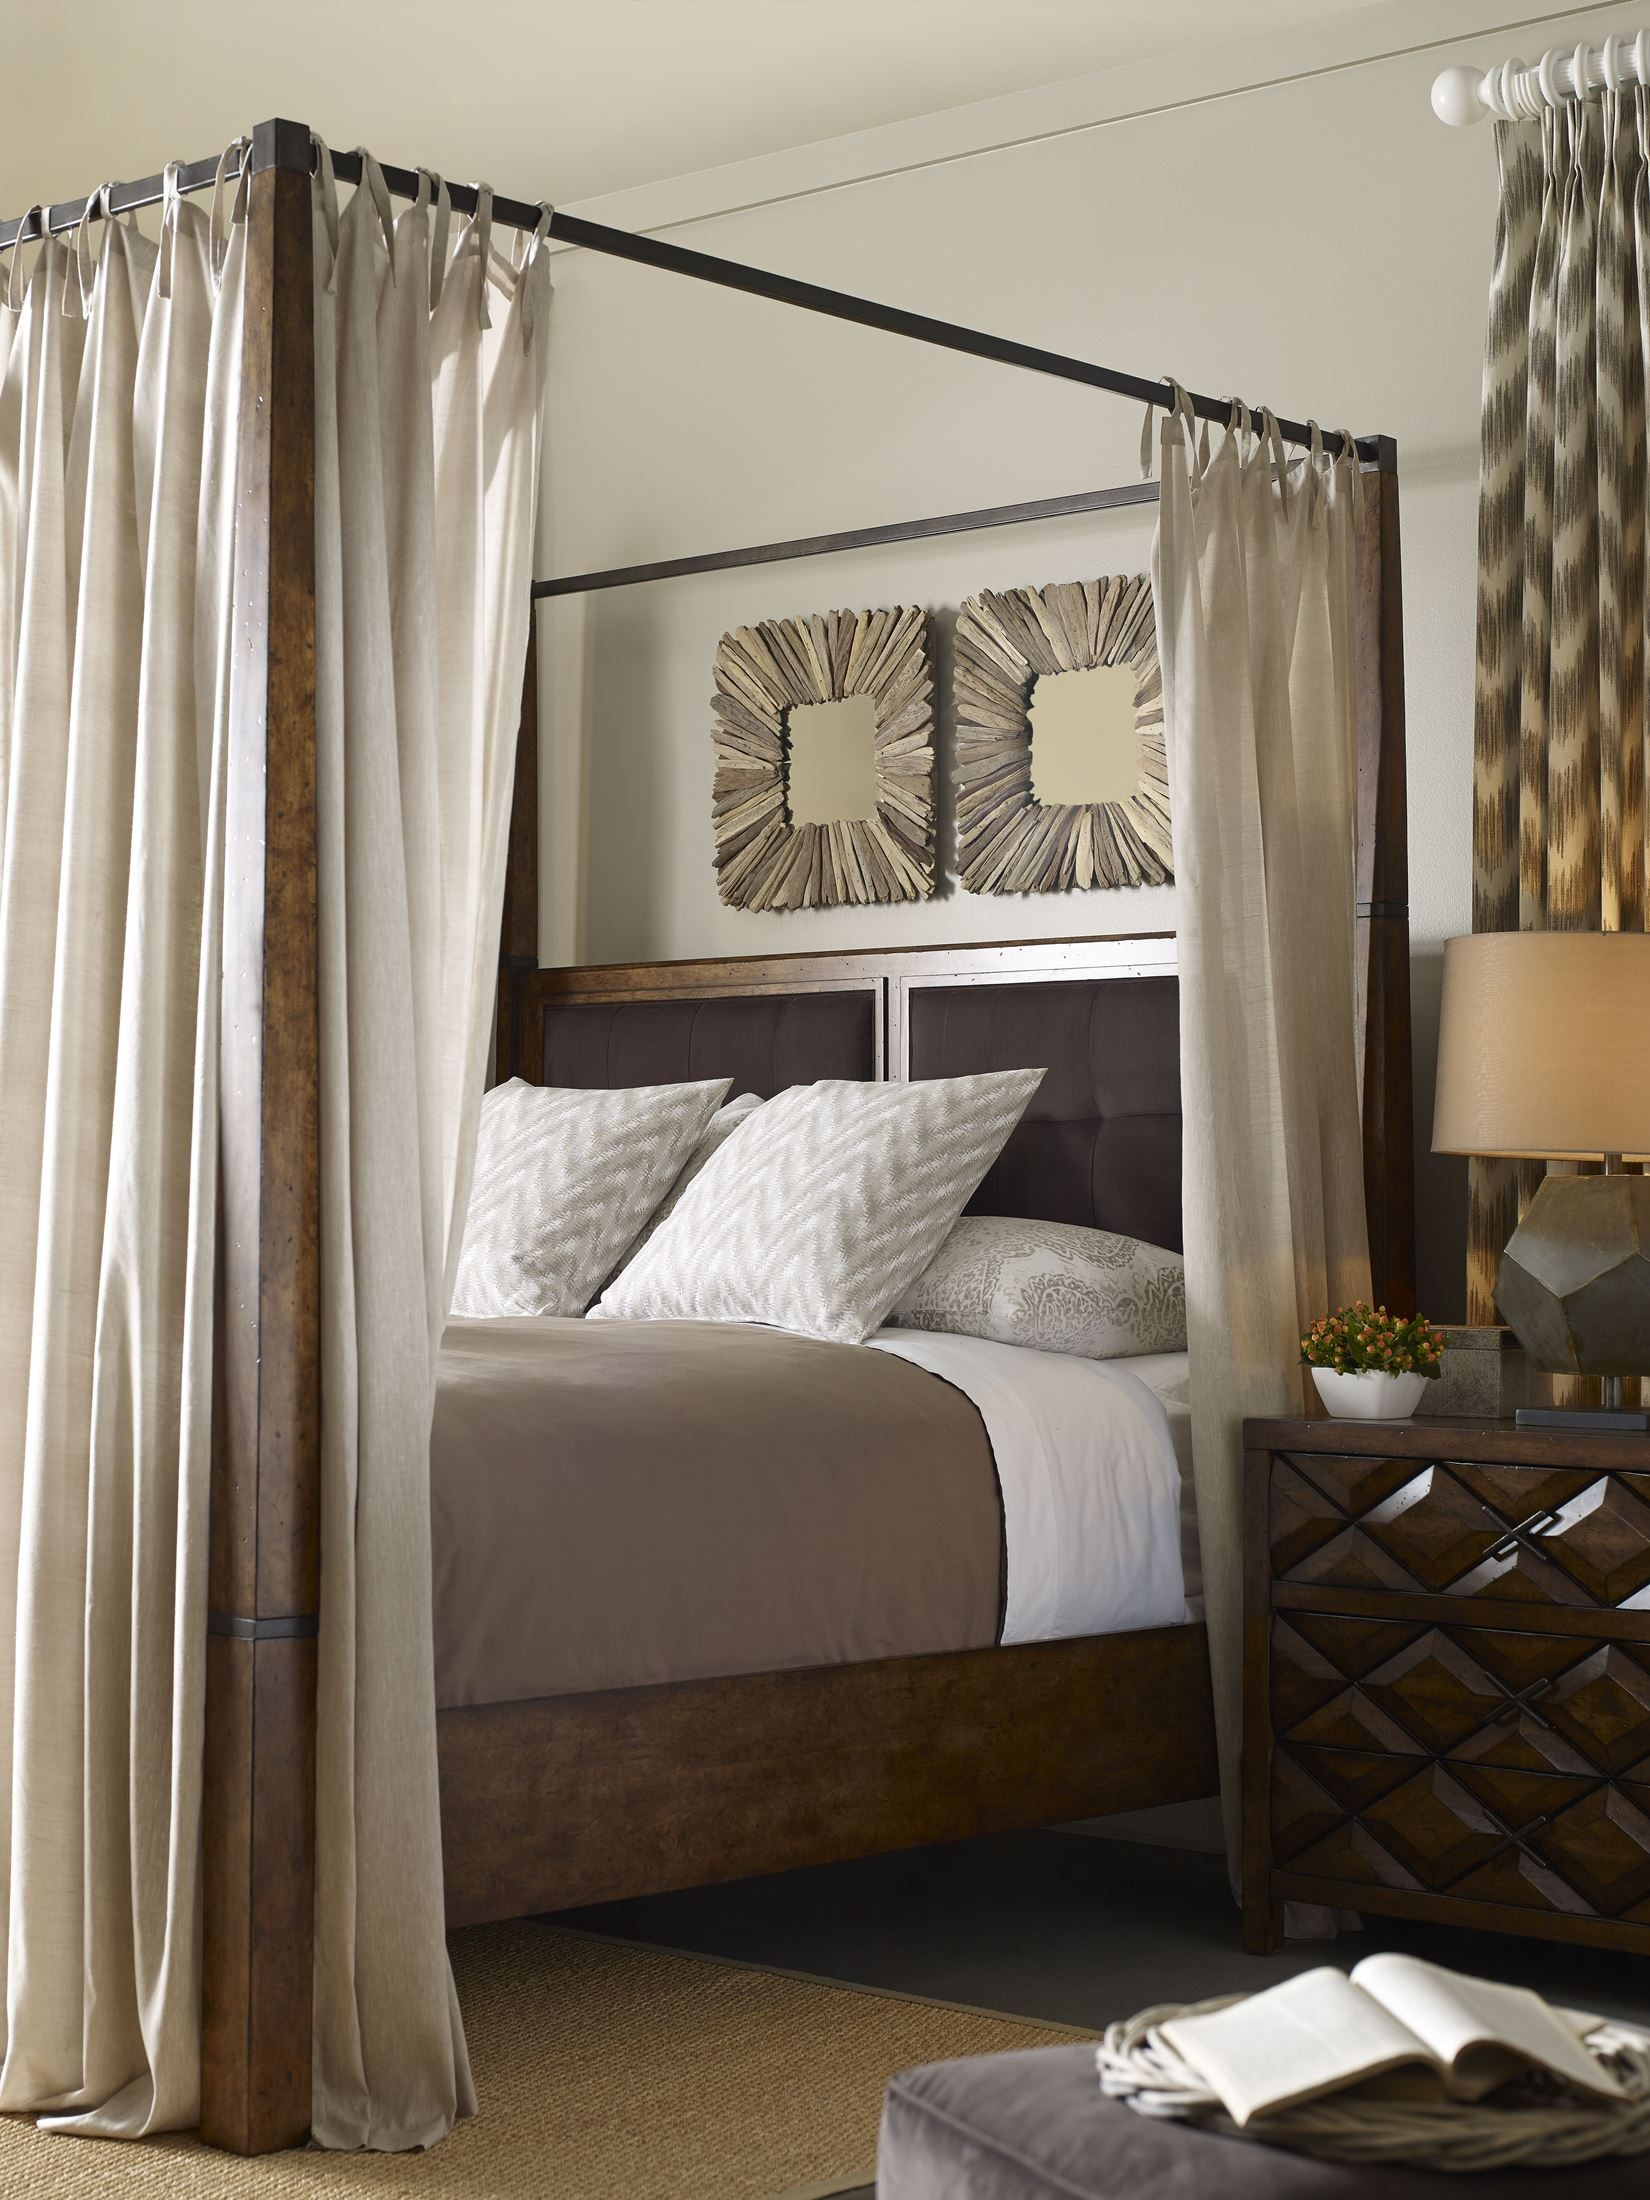 Echo Park Huston S Arroyo Cal King Poster Canopy Bed From